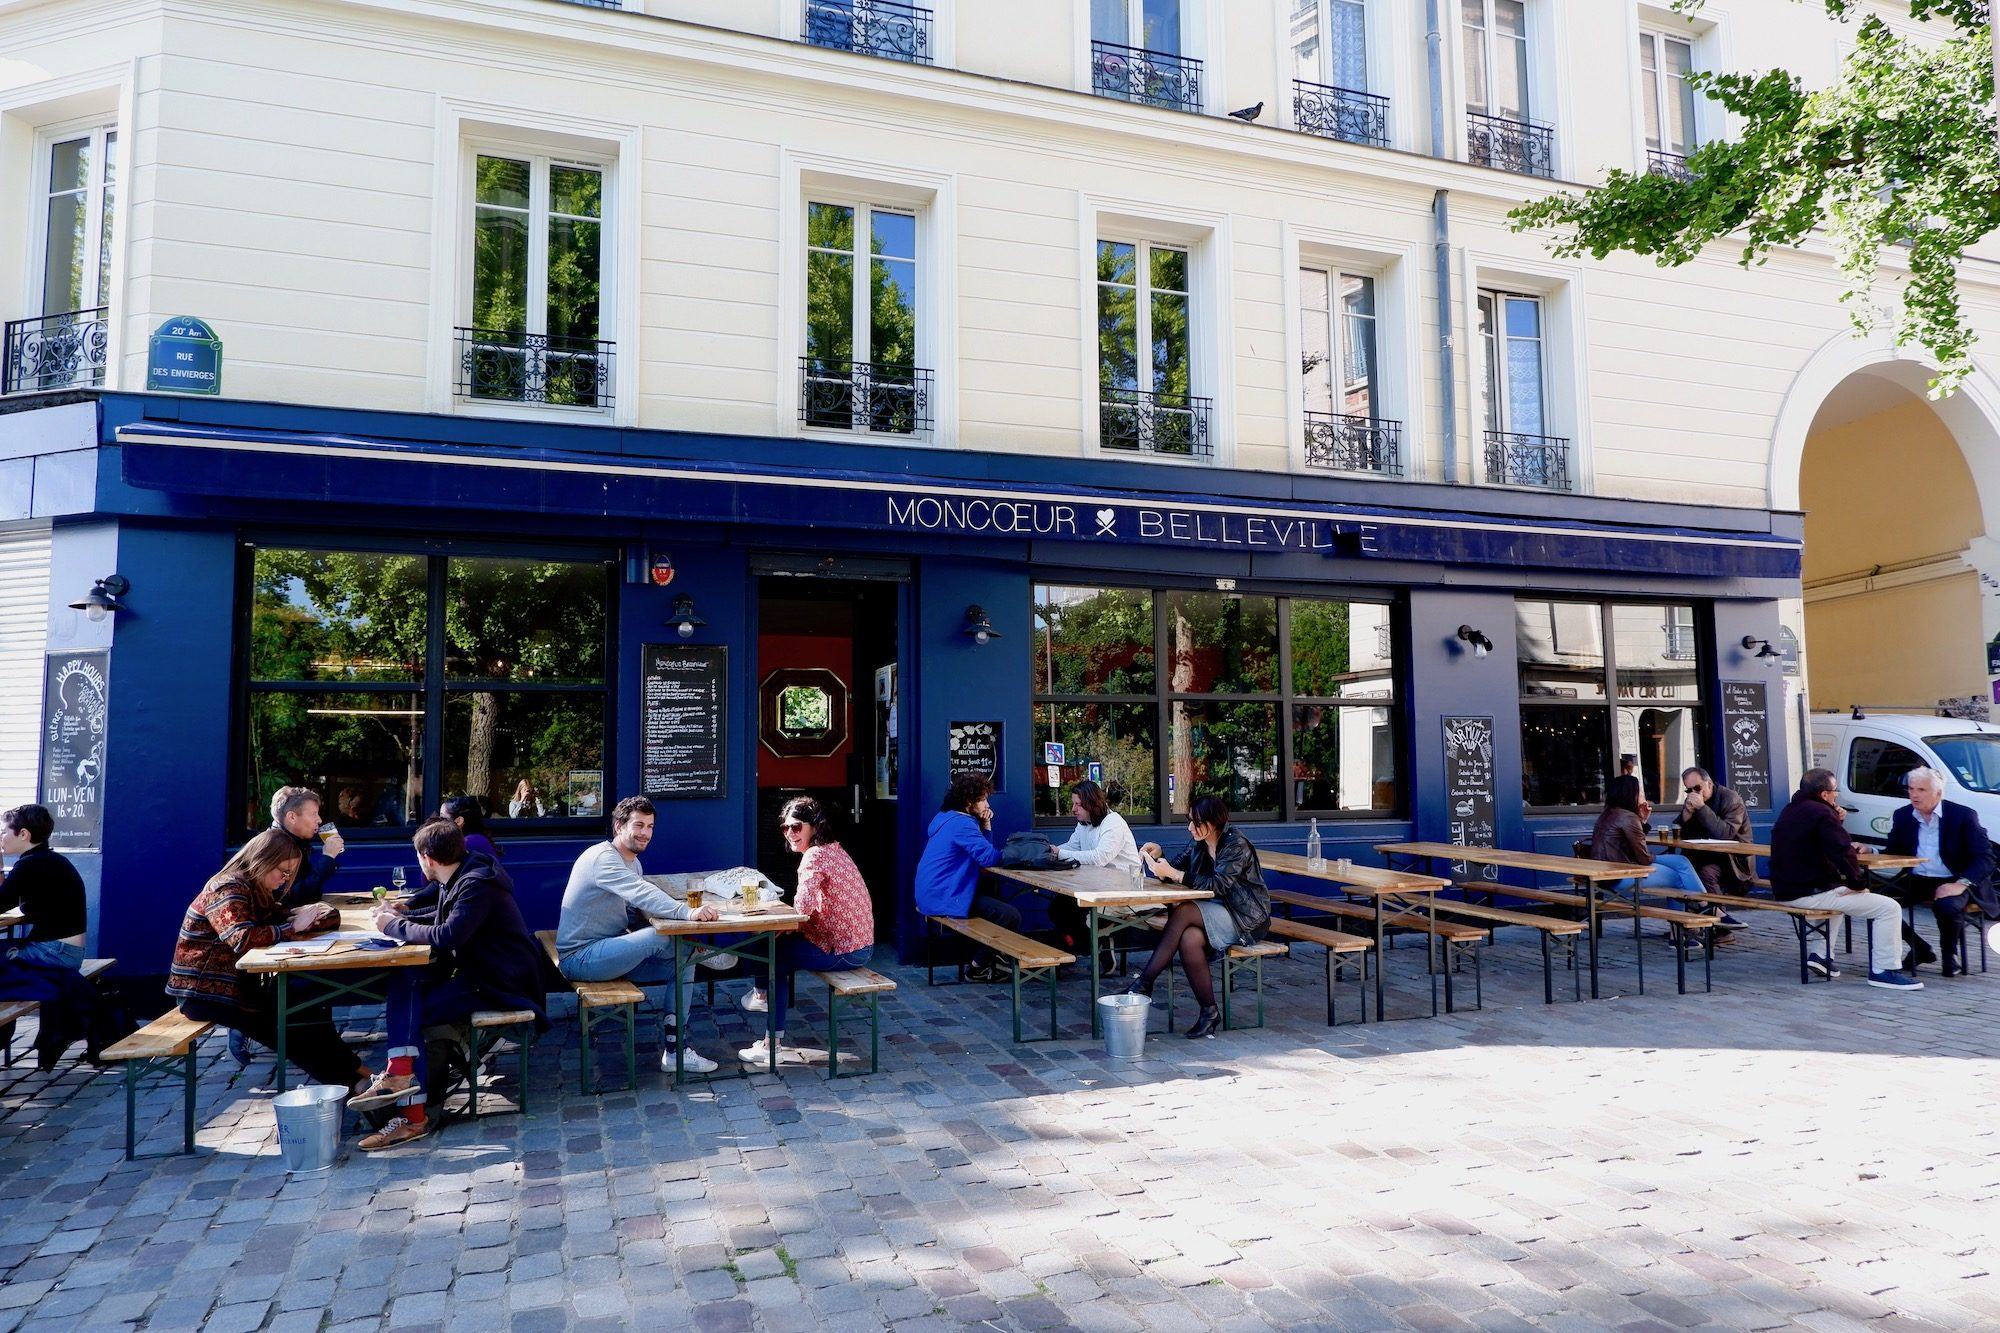 Moncoeur in Belleville, Paris is also a go-to terrace in summer because of the views of Paris and the Eiffel Tower.